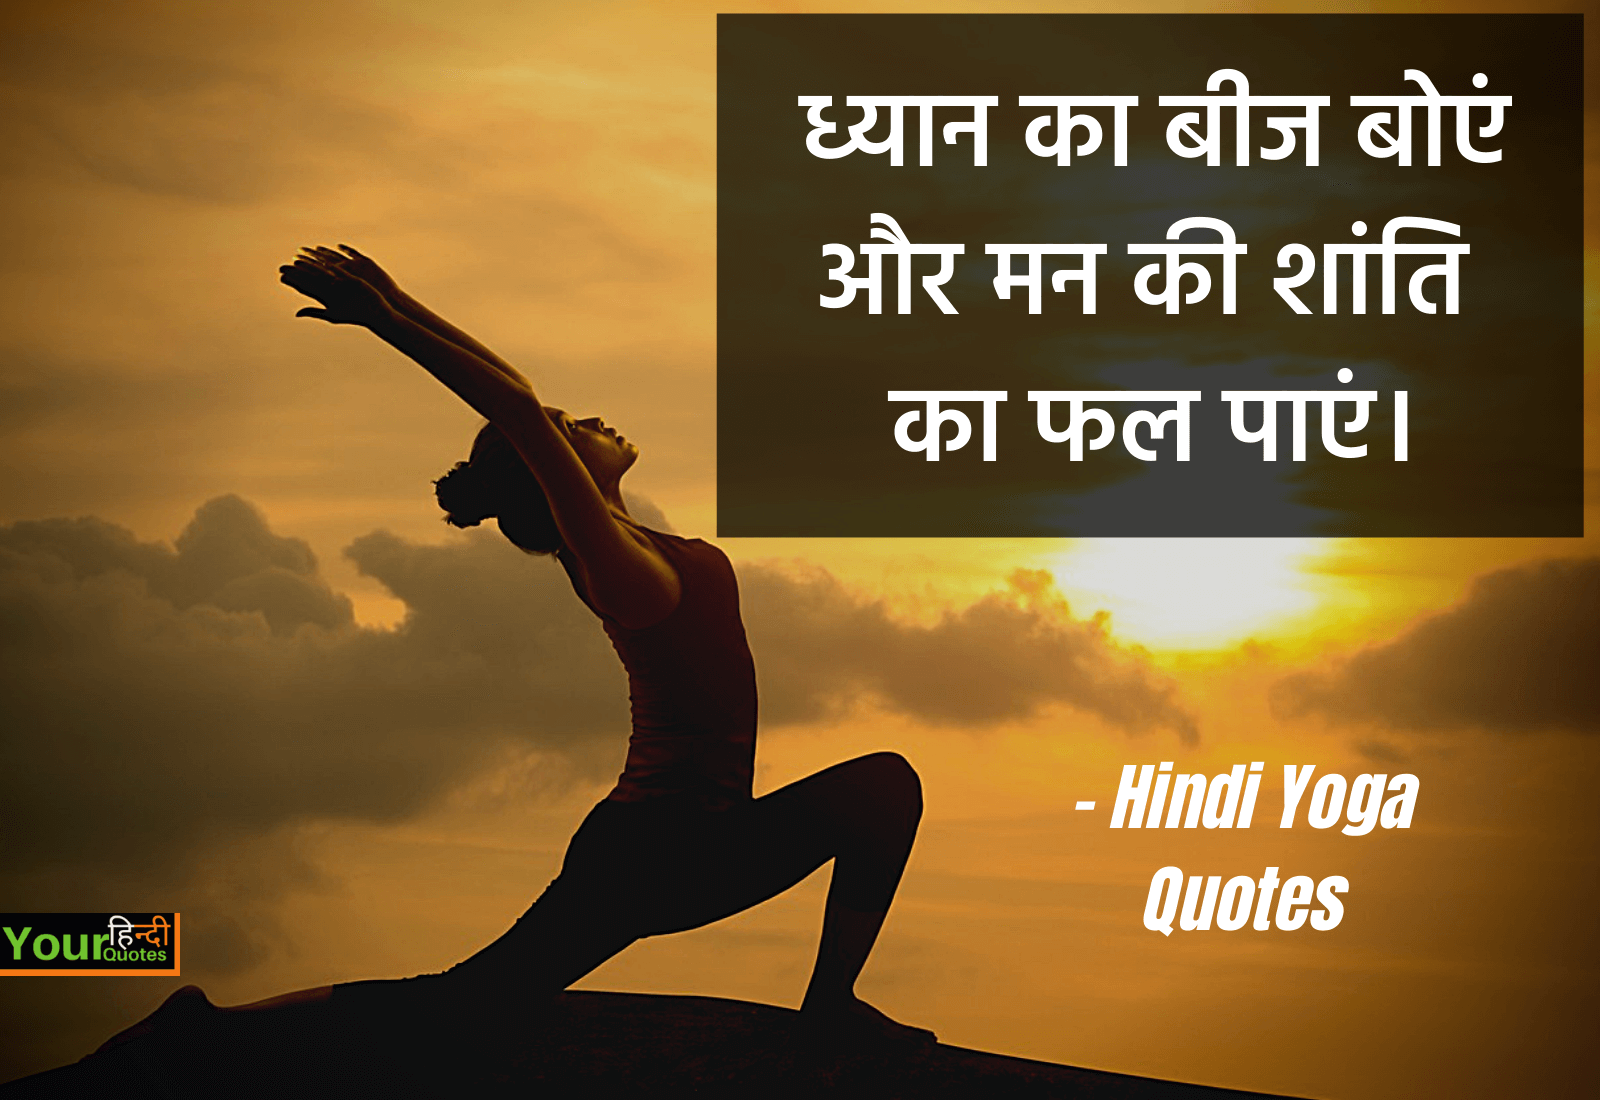 Hindi Yoga Quote Images